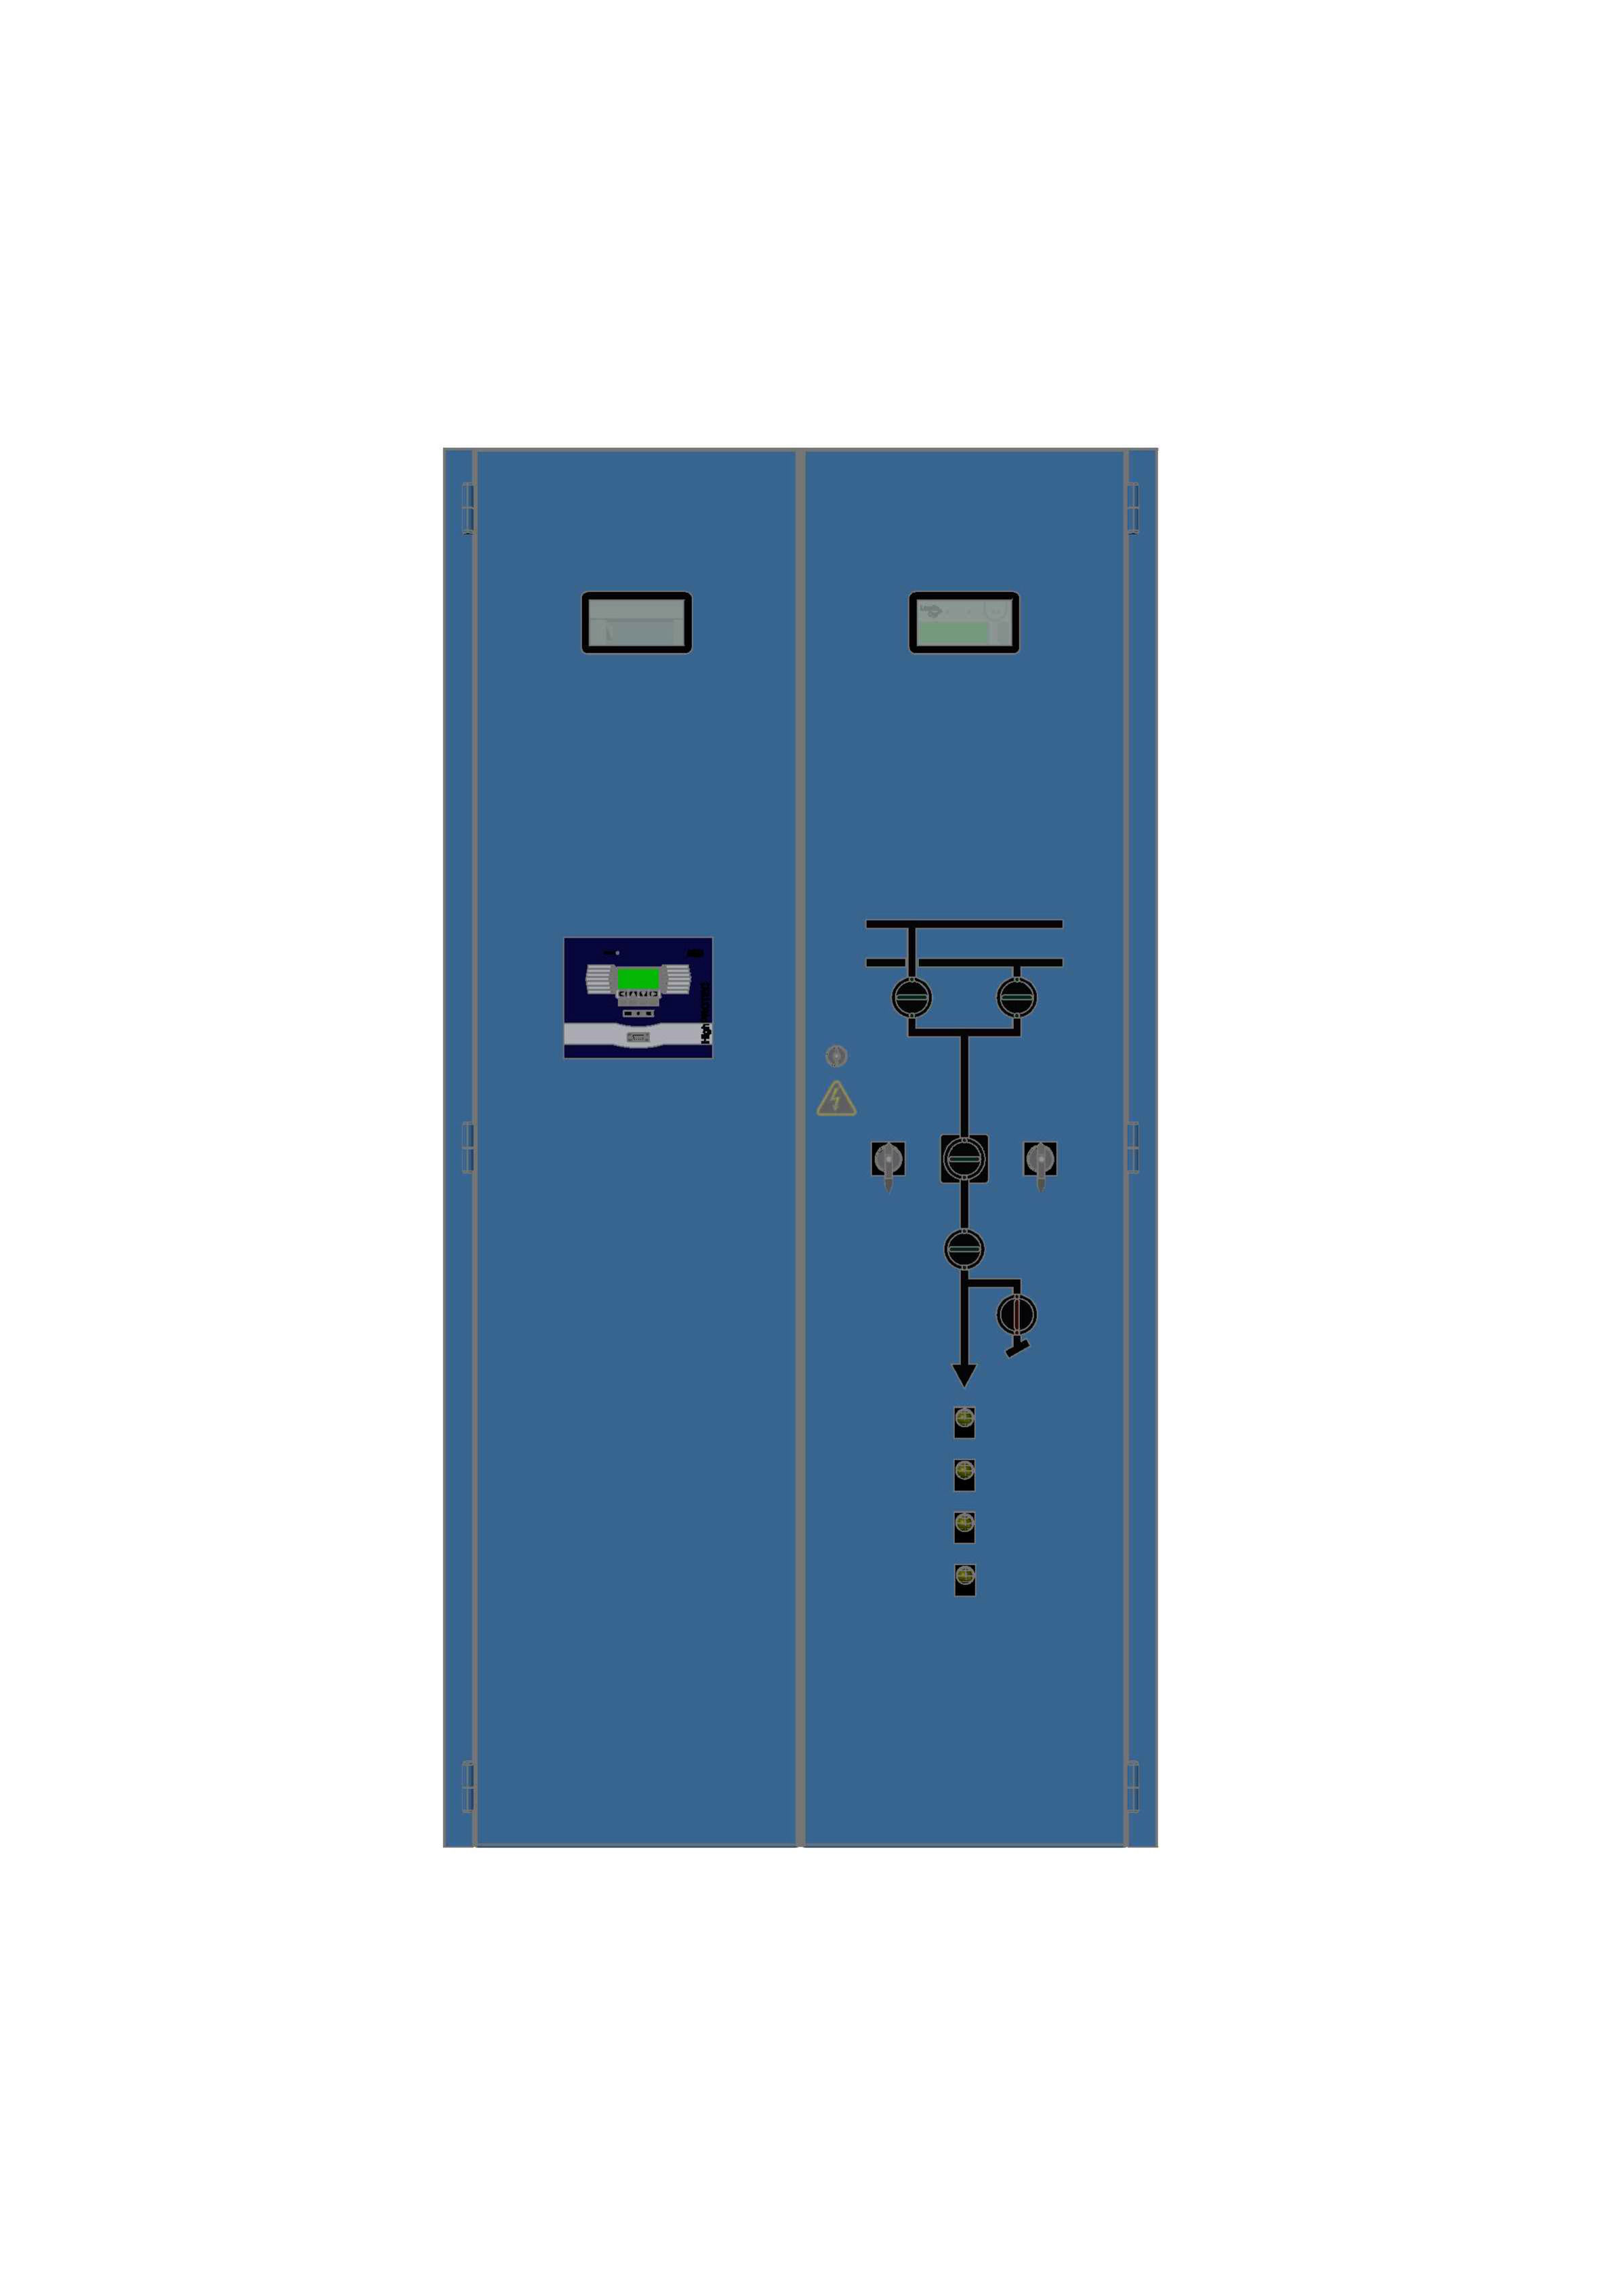 Electrical Relay Board 3d Cgtrader For Model Dwg 4